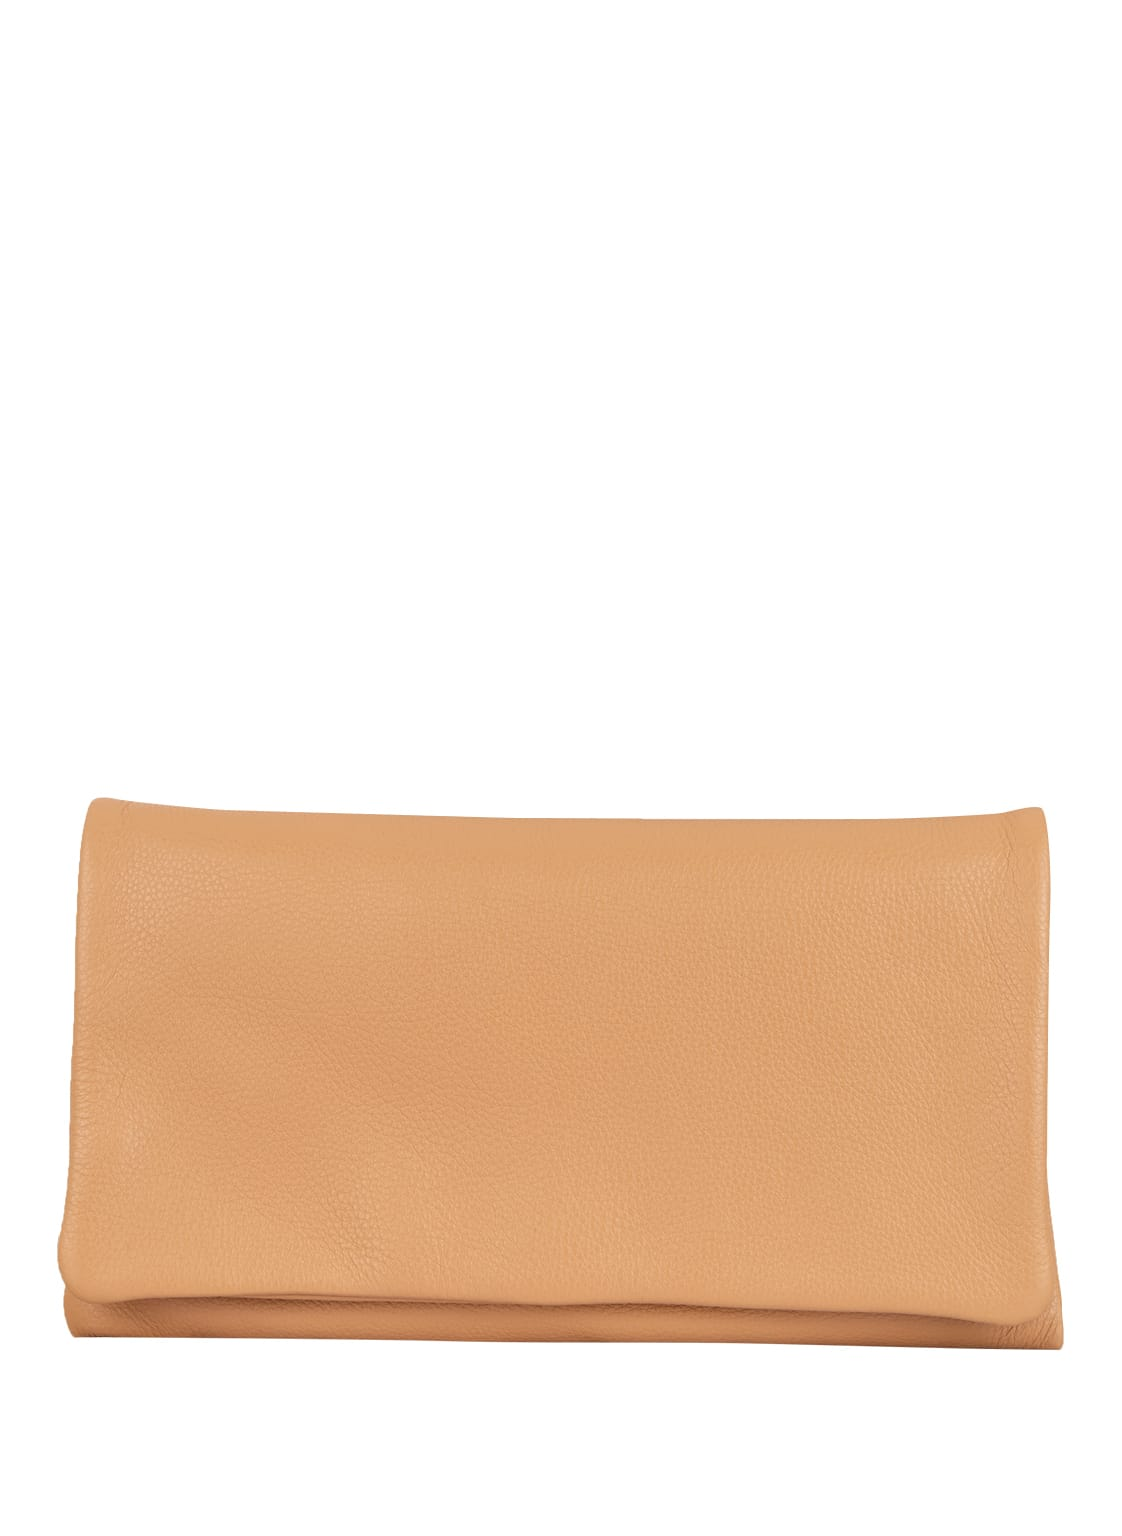 Image of Abro Clutch beige